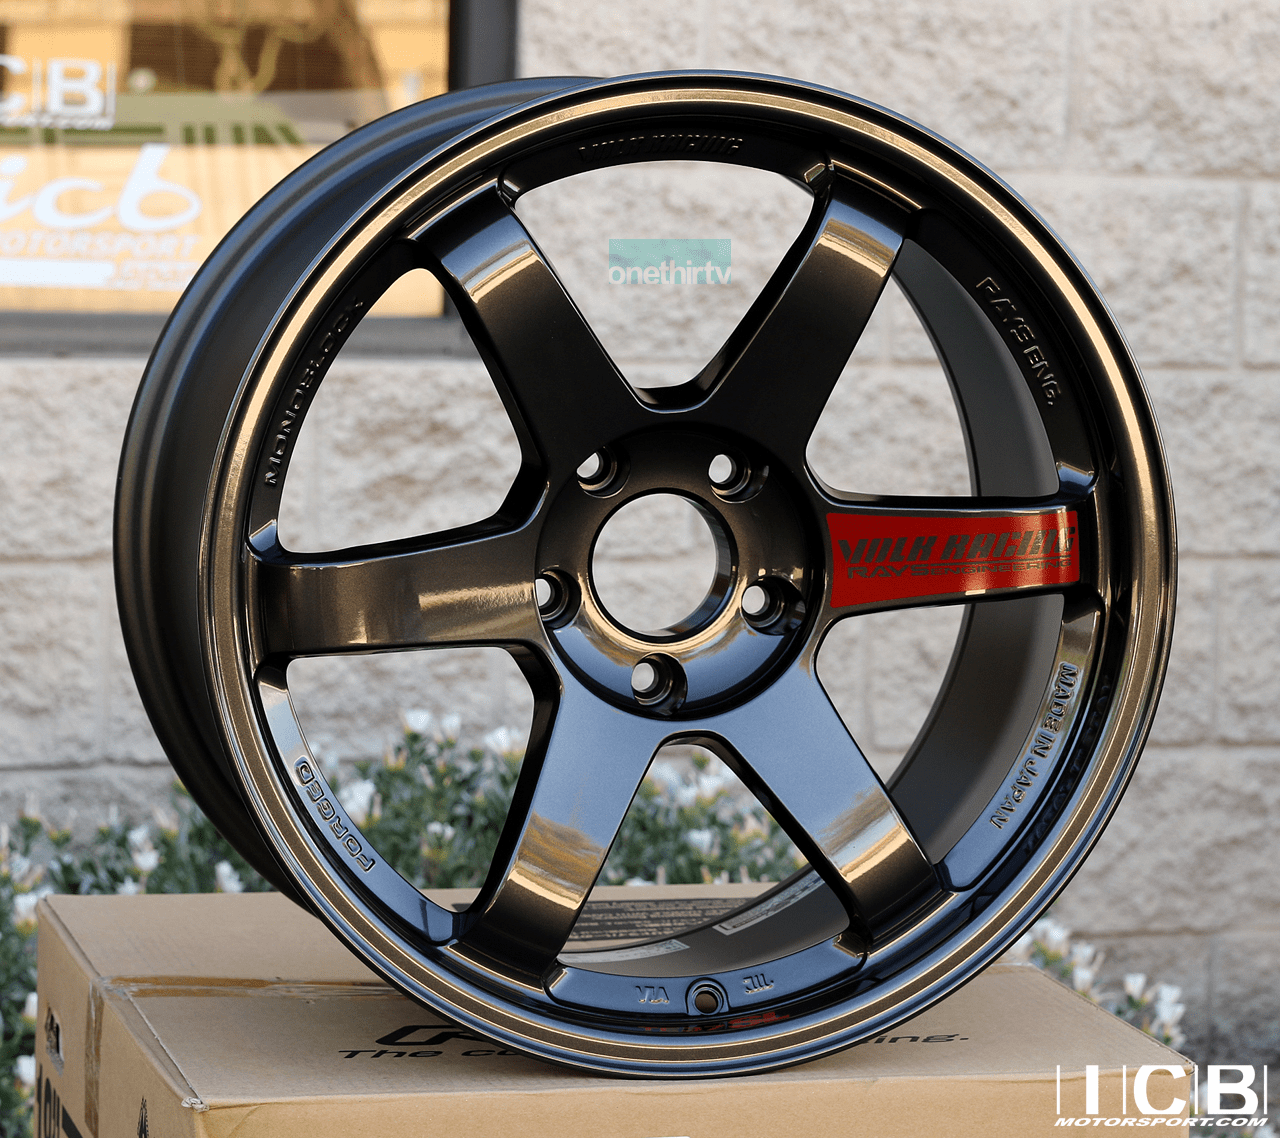 Rays Volk Racing TE37SL Diamond Black Wheels 18X10 +25 Offset 5X120 BMW M3 E46/92 F80/82 M4 GTR Concave Face